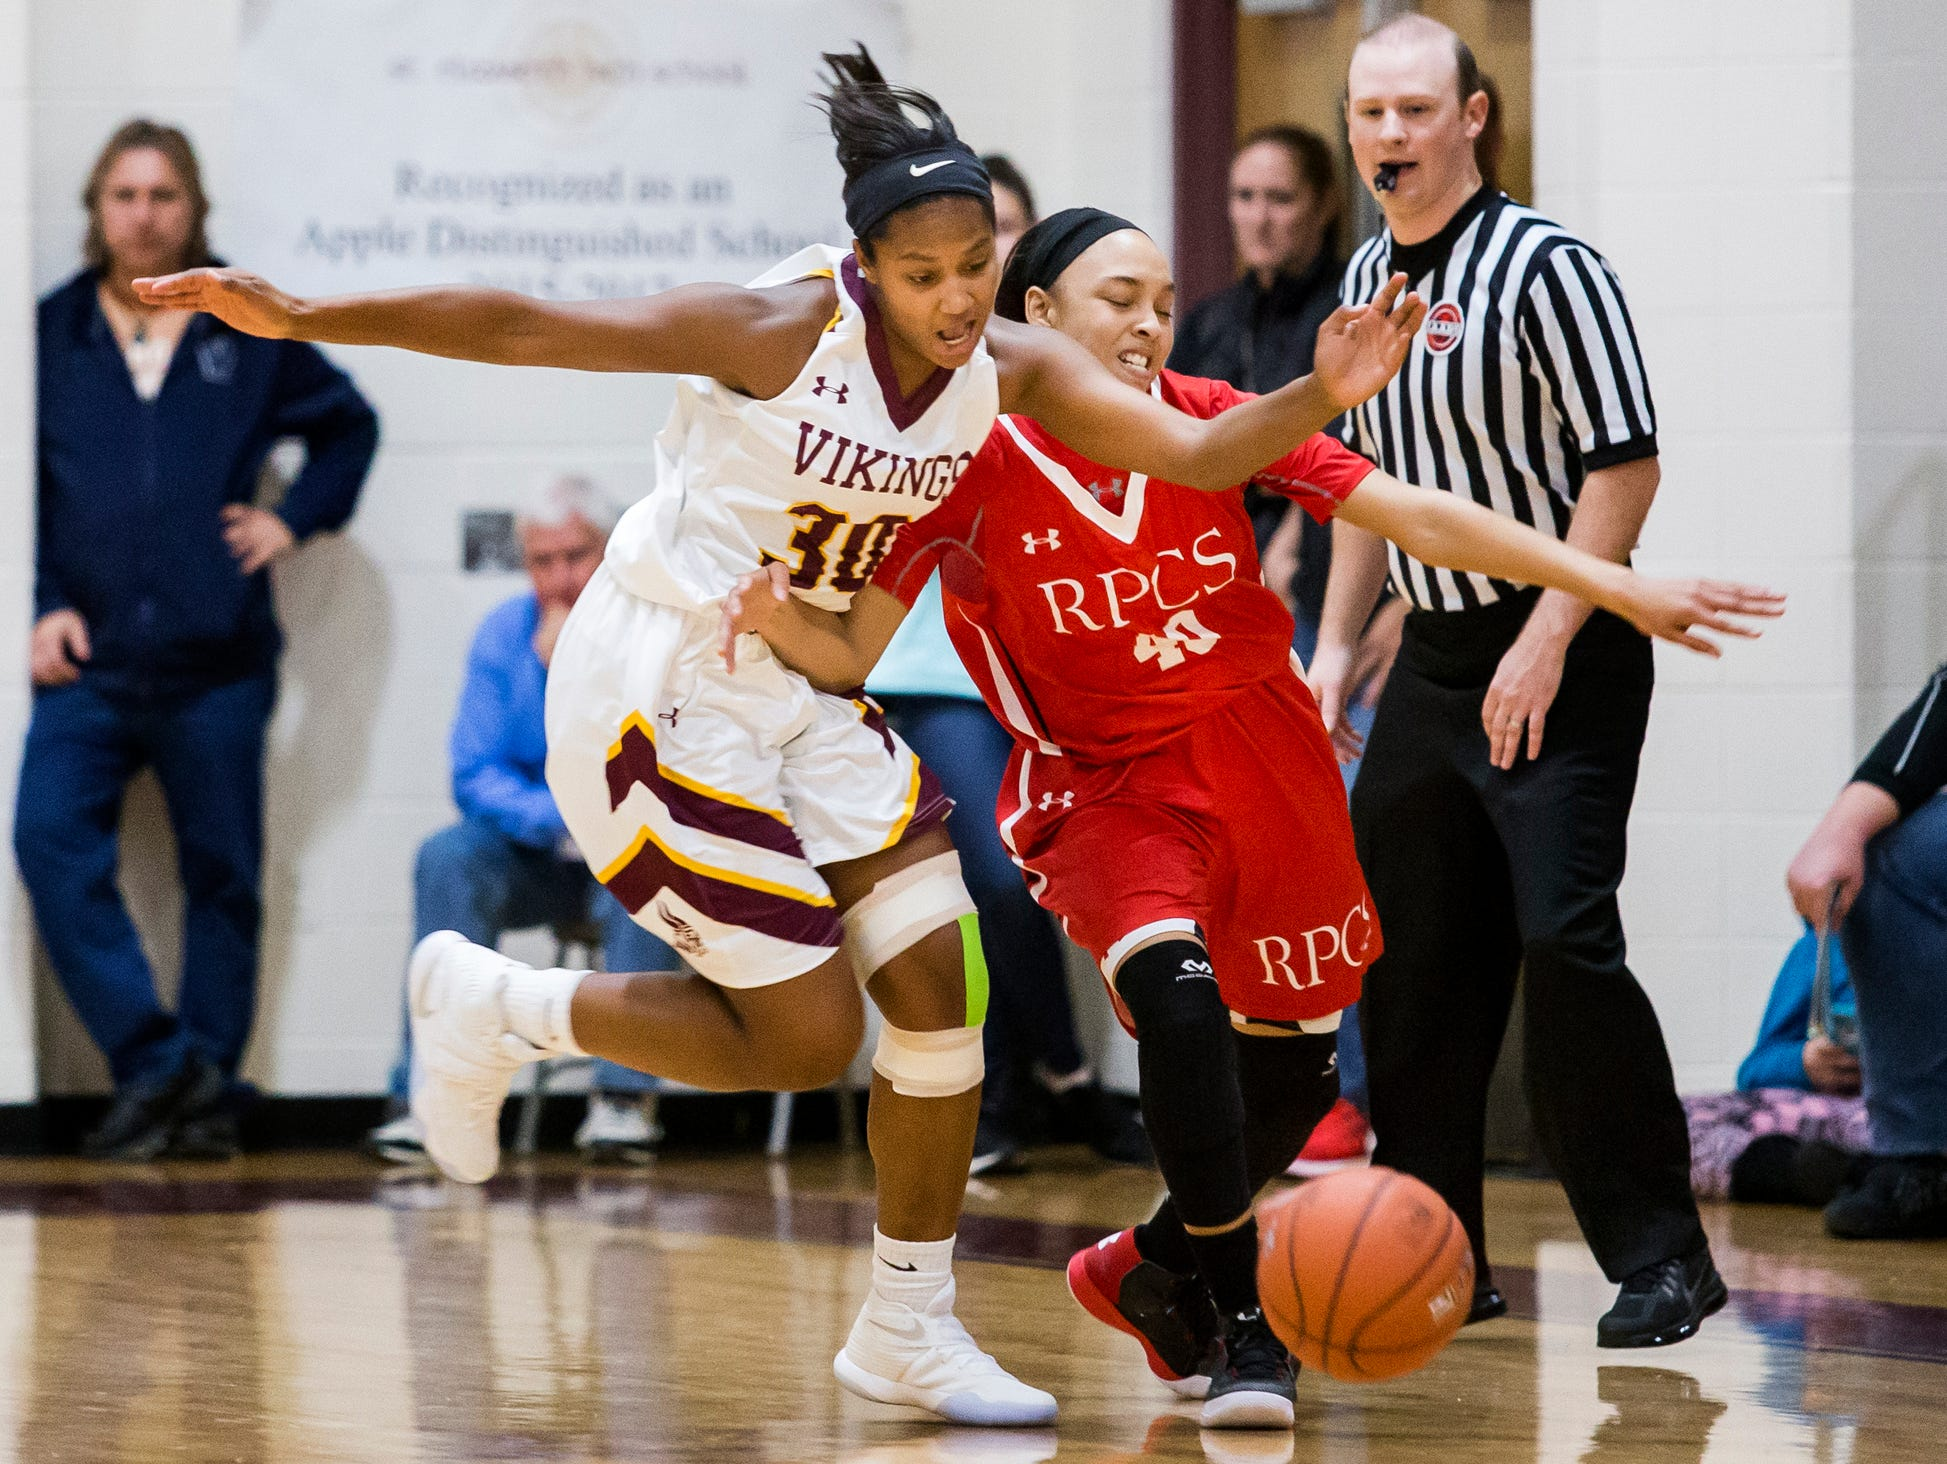 St. Elizabeth's Alanna Speaks (No. 30) steals the ball from Roland Park's Aniyah Carpenter in the first half of St. Elizabeth's 58-44 loss to Roland Park Country School in the Diamond State Classic at St. Elizabeth High School in Wilmington on Tuesday night.